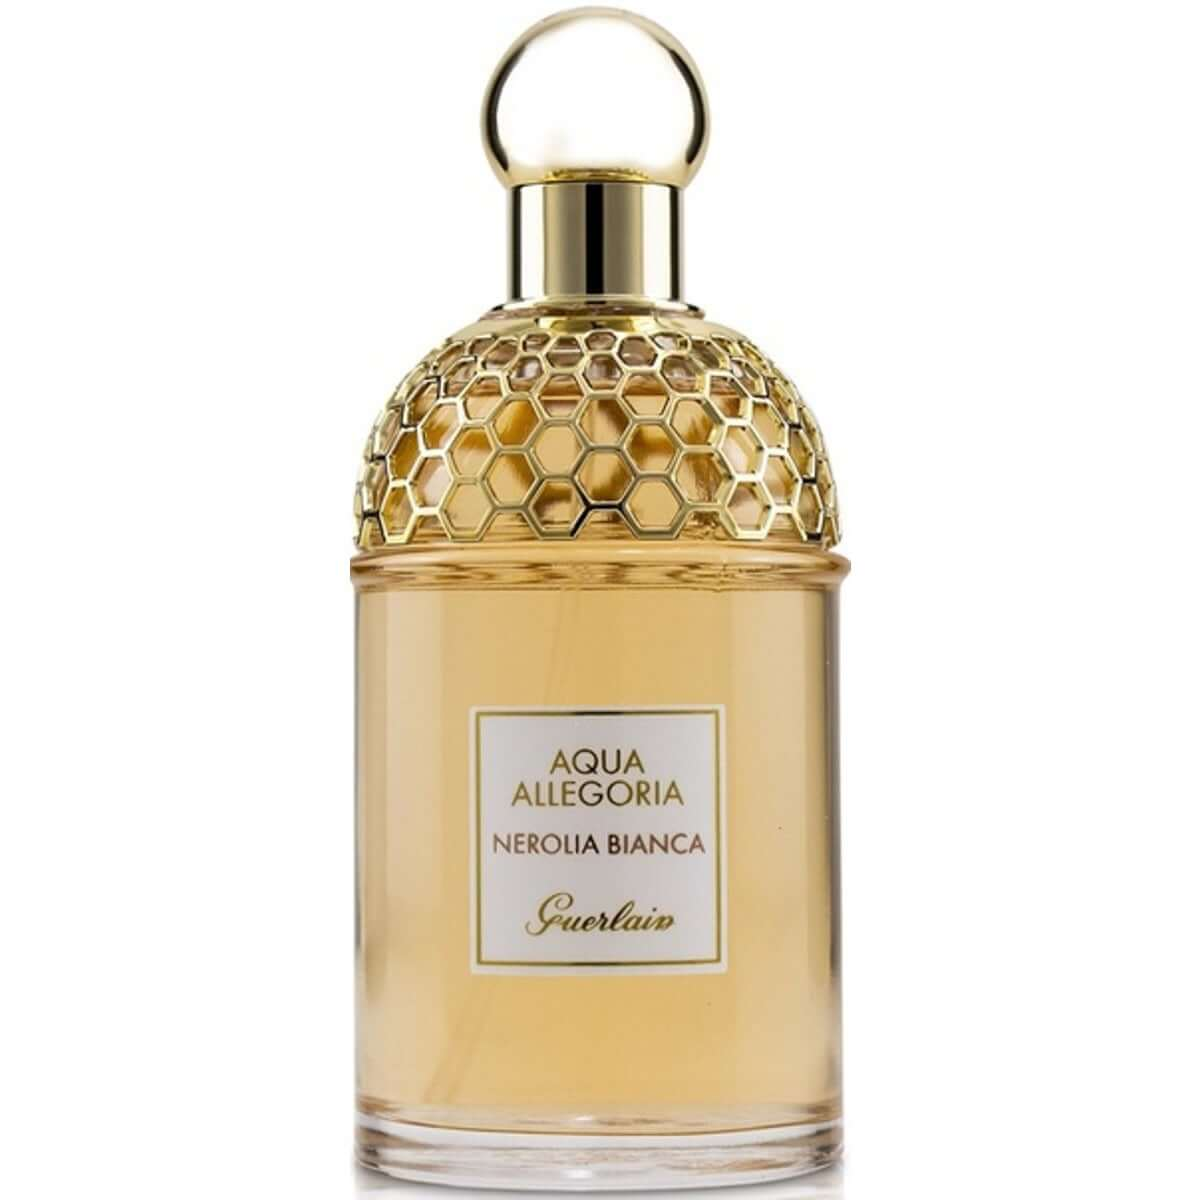 Aqua Allegoria Nerolia Bianca by Guerlain for her EDT 4.2 oz New Tester